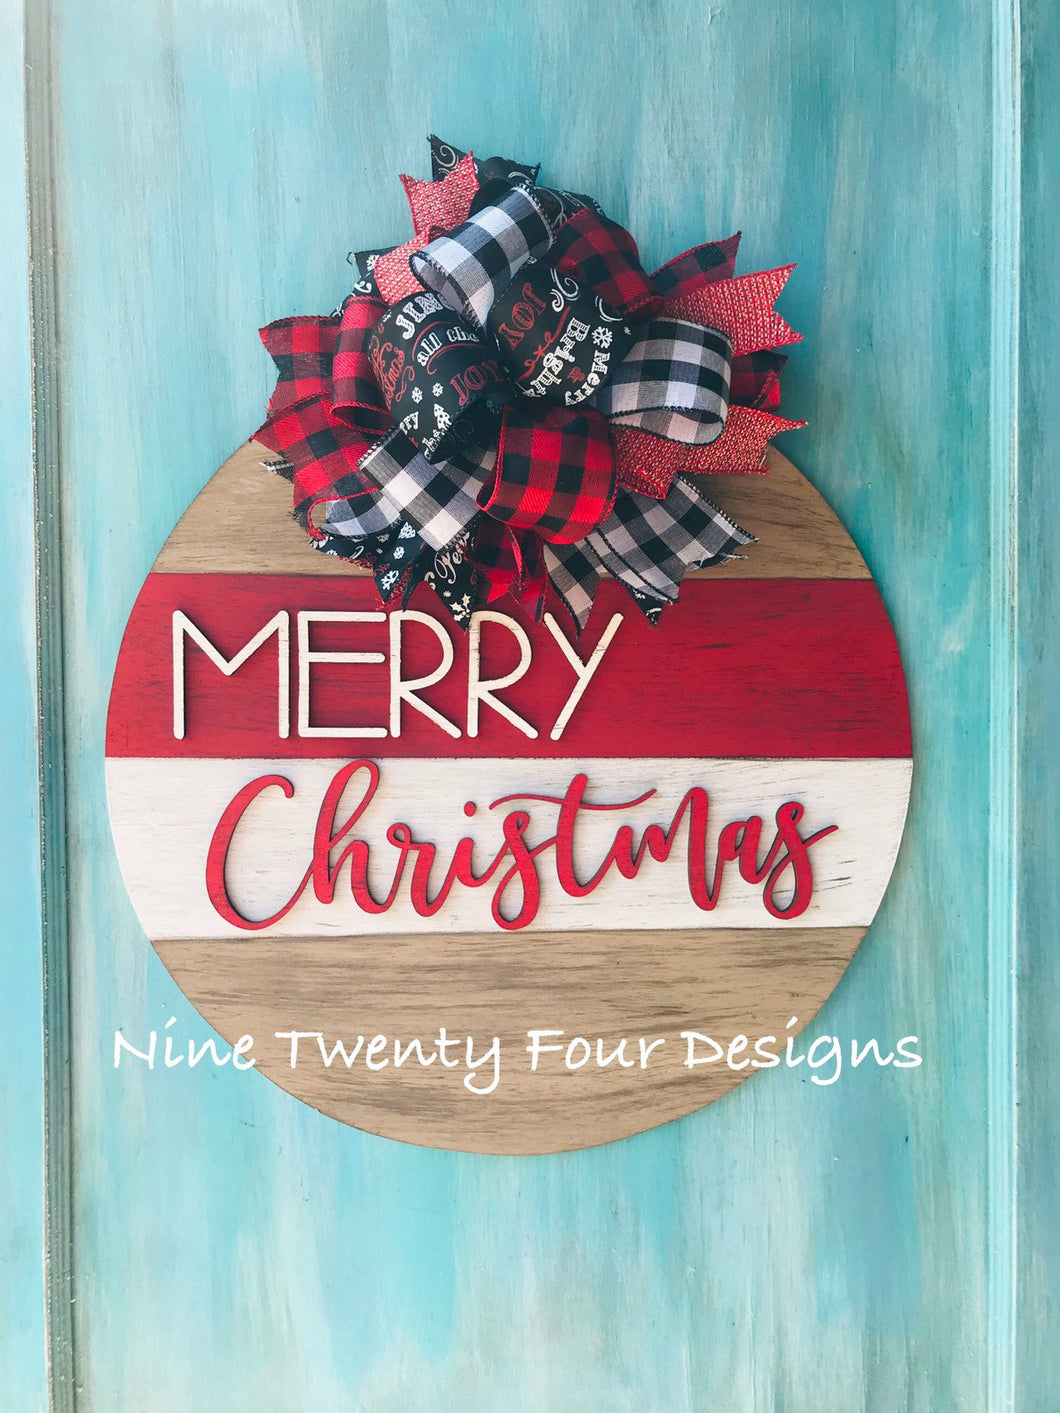 Merry Christmas 3D round sign, chistmas door hanger, christmas, holiday decor, christmas decor